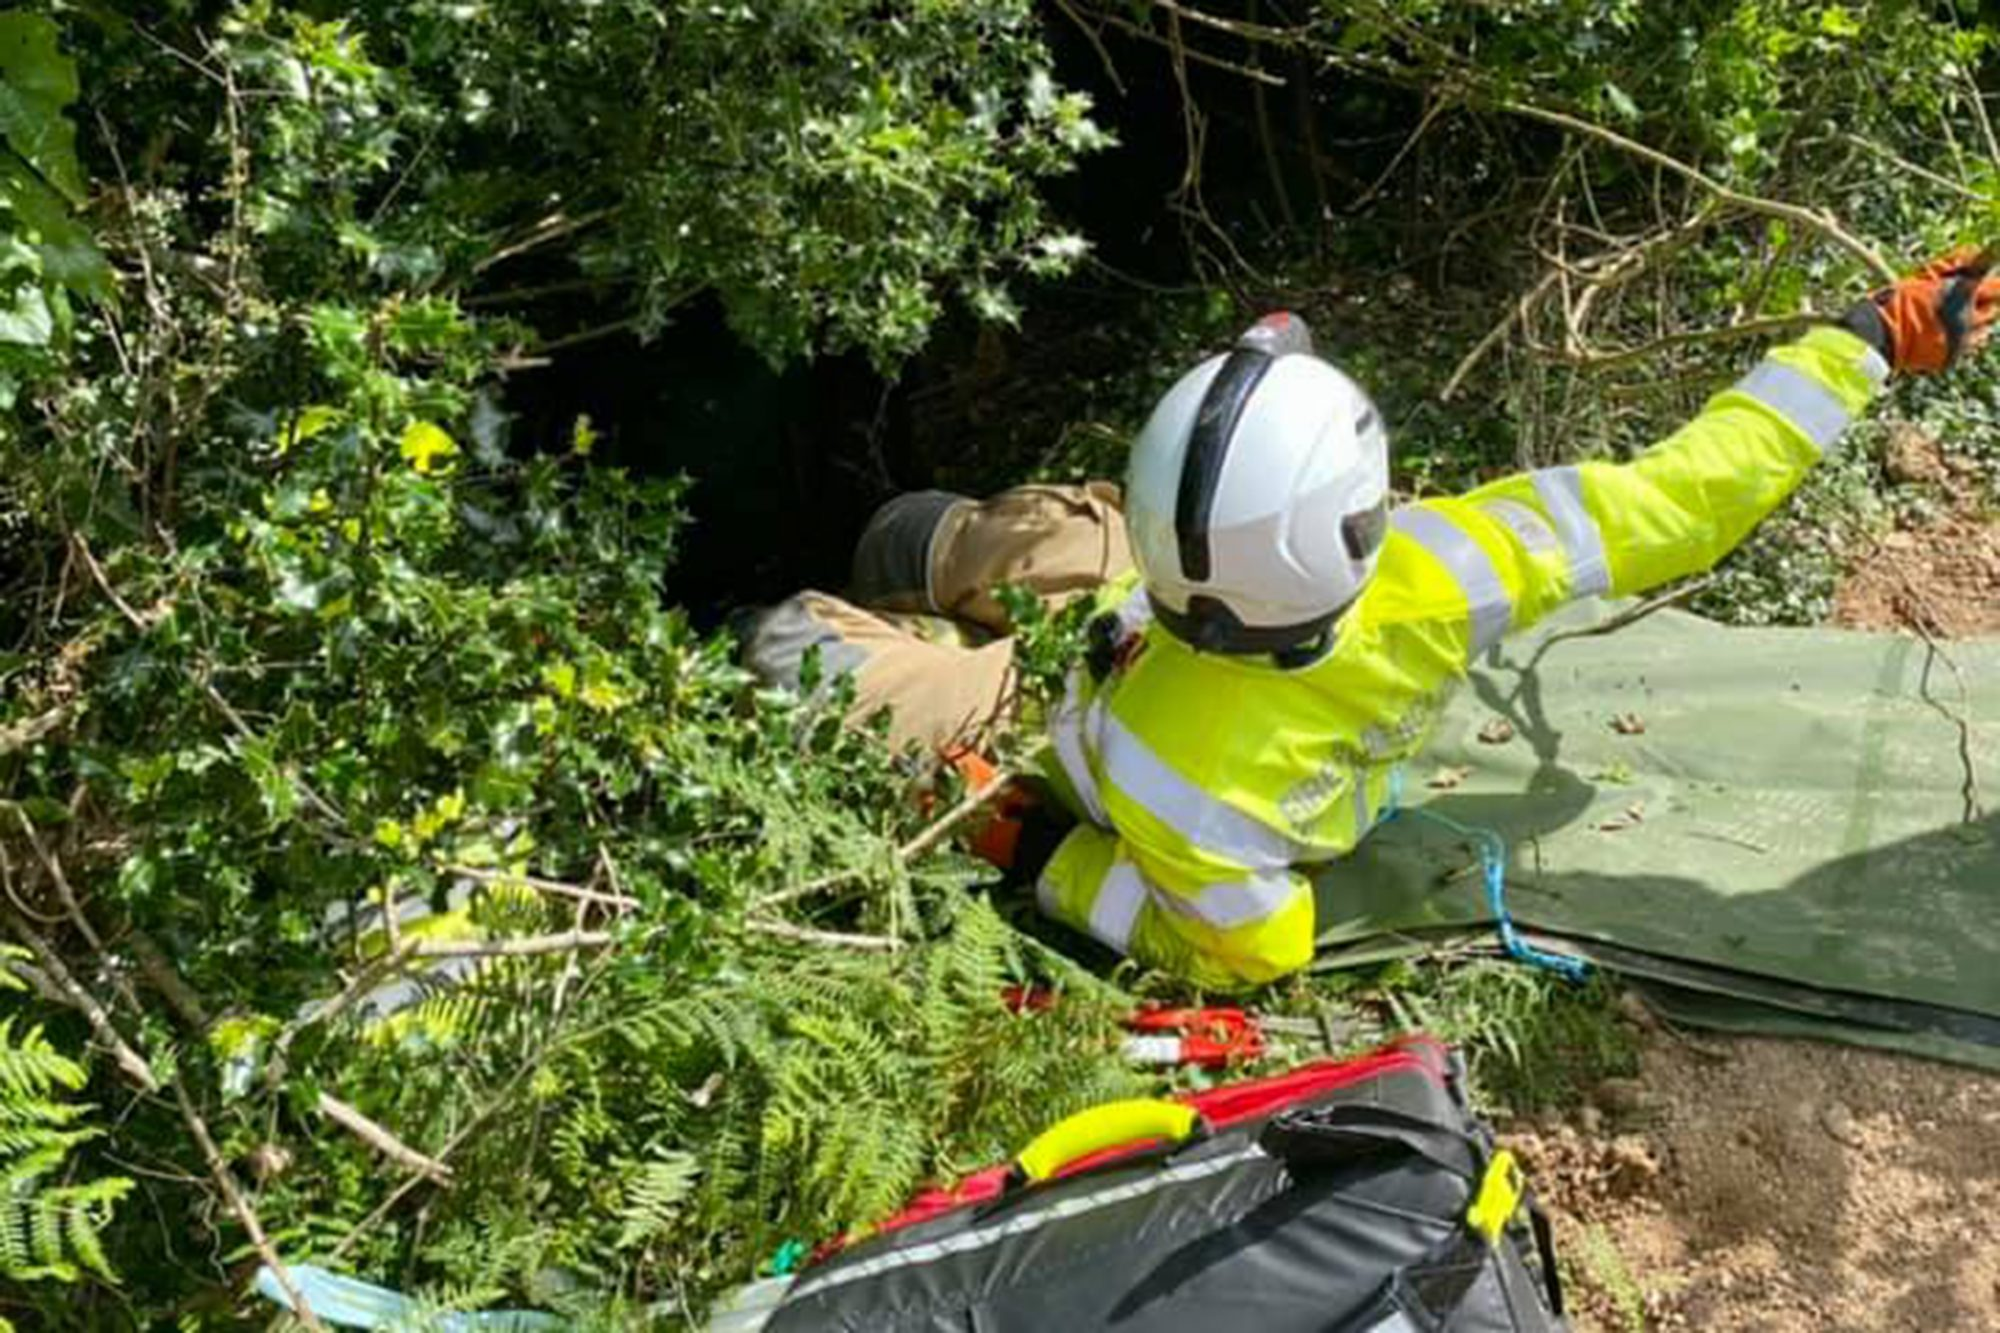 rescuer going down embankment where woman fell down